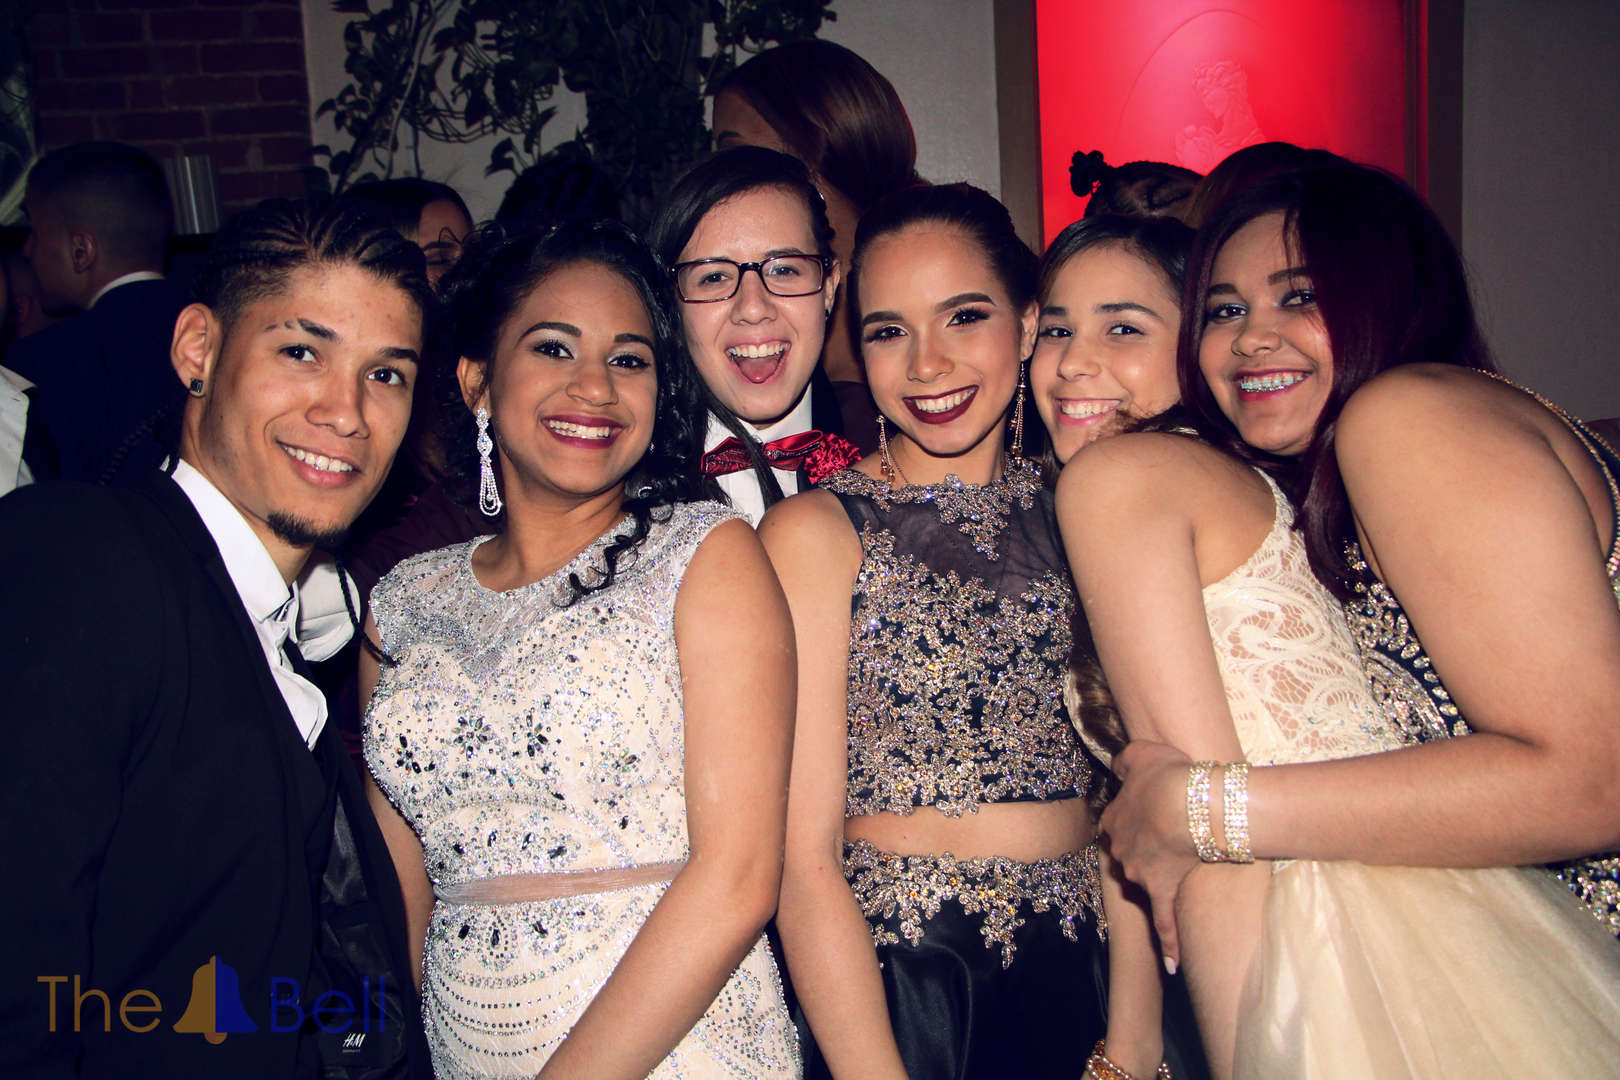 Friends at Prom